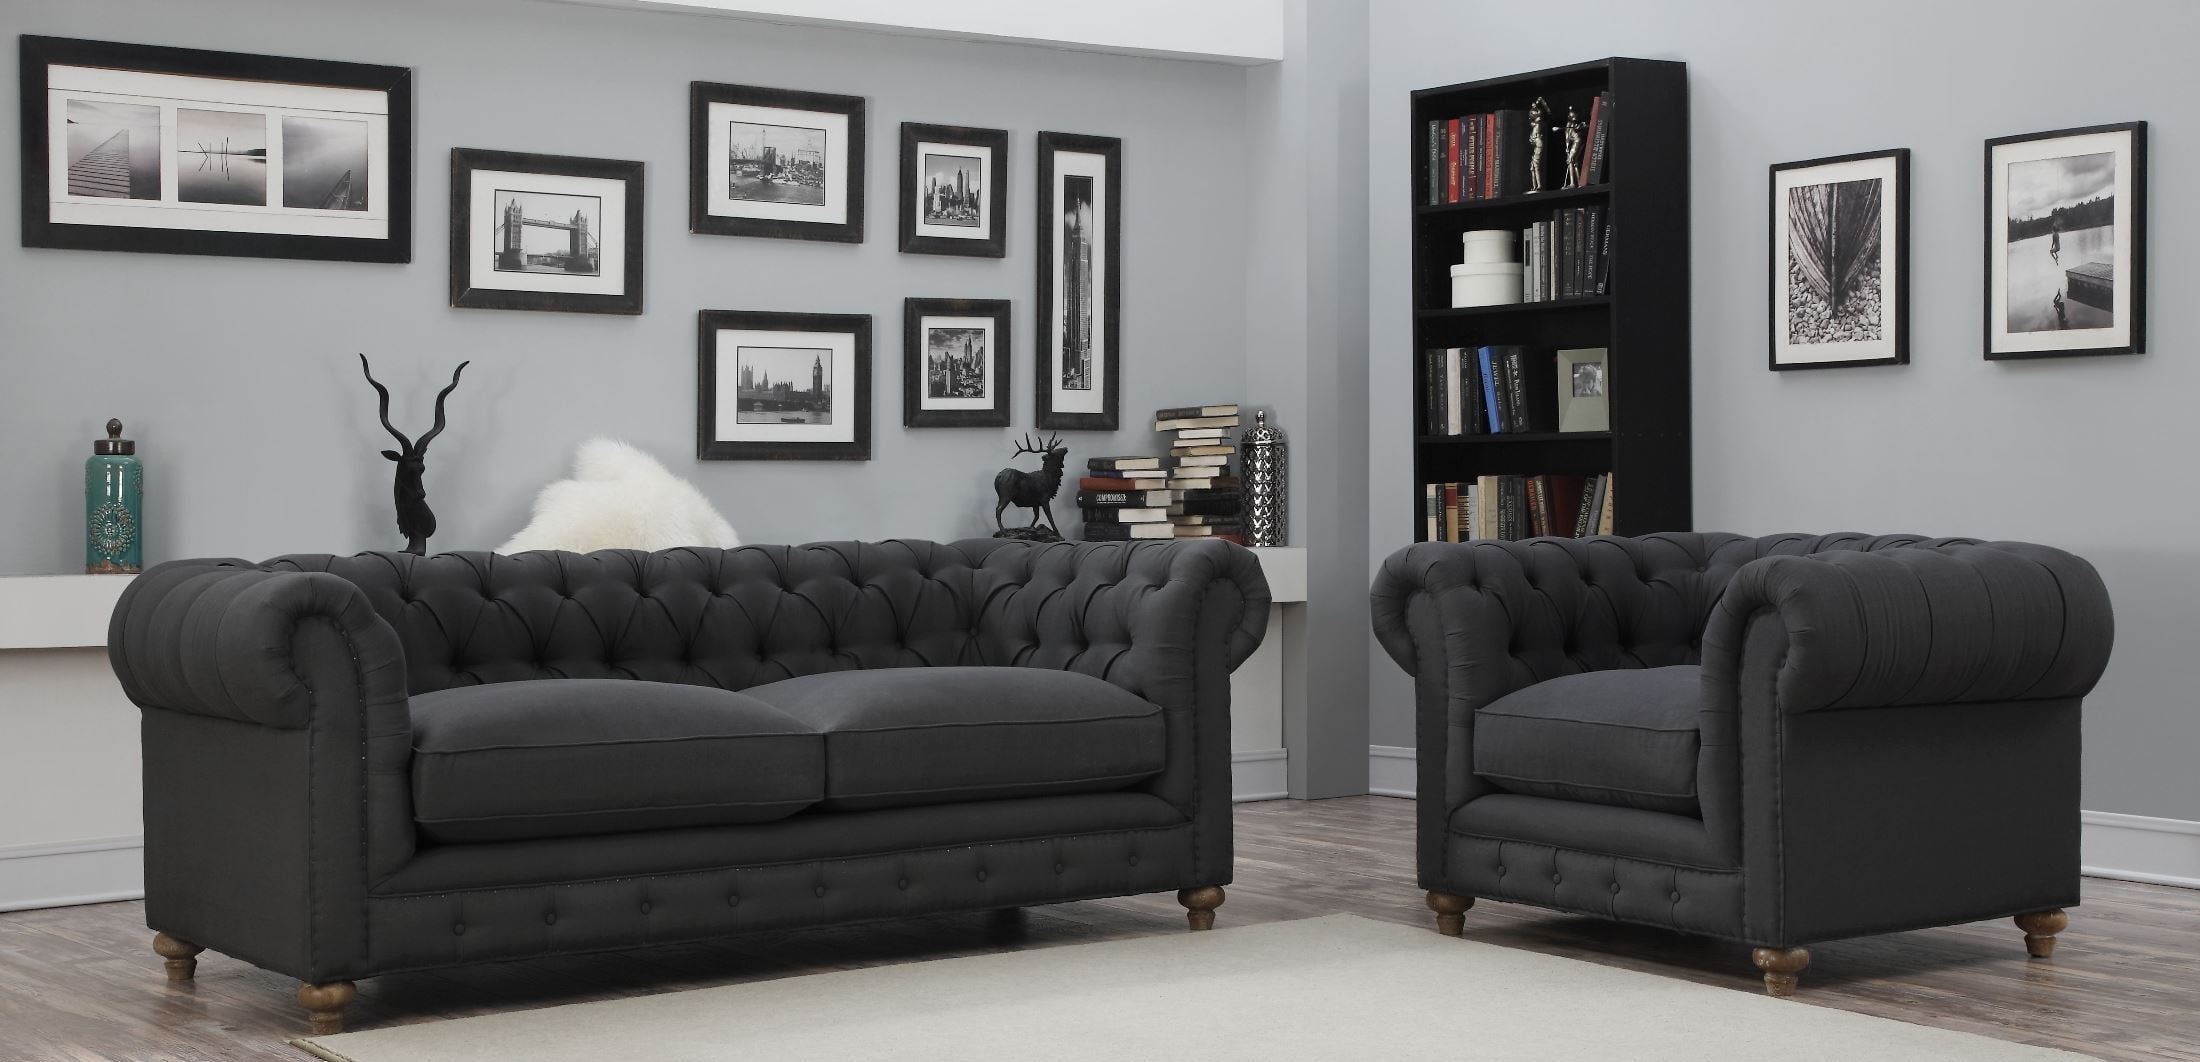 Oxford gray linen living room set from tov s34 coleman for Grey living room sets